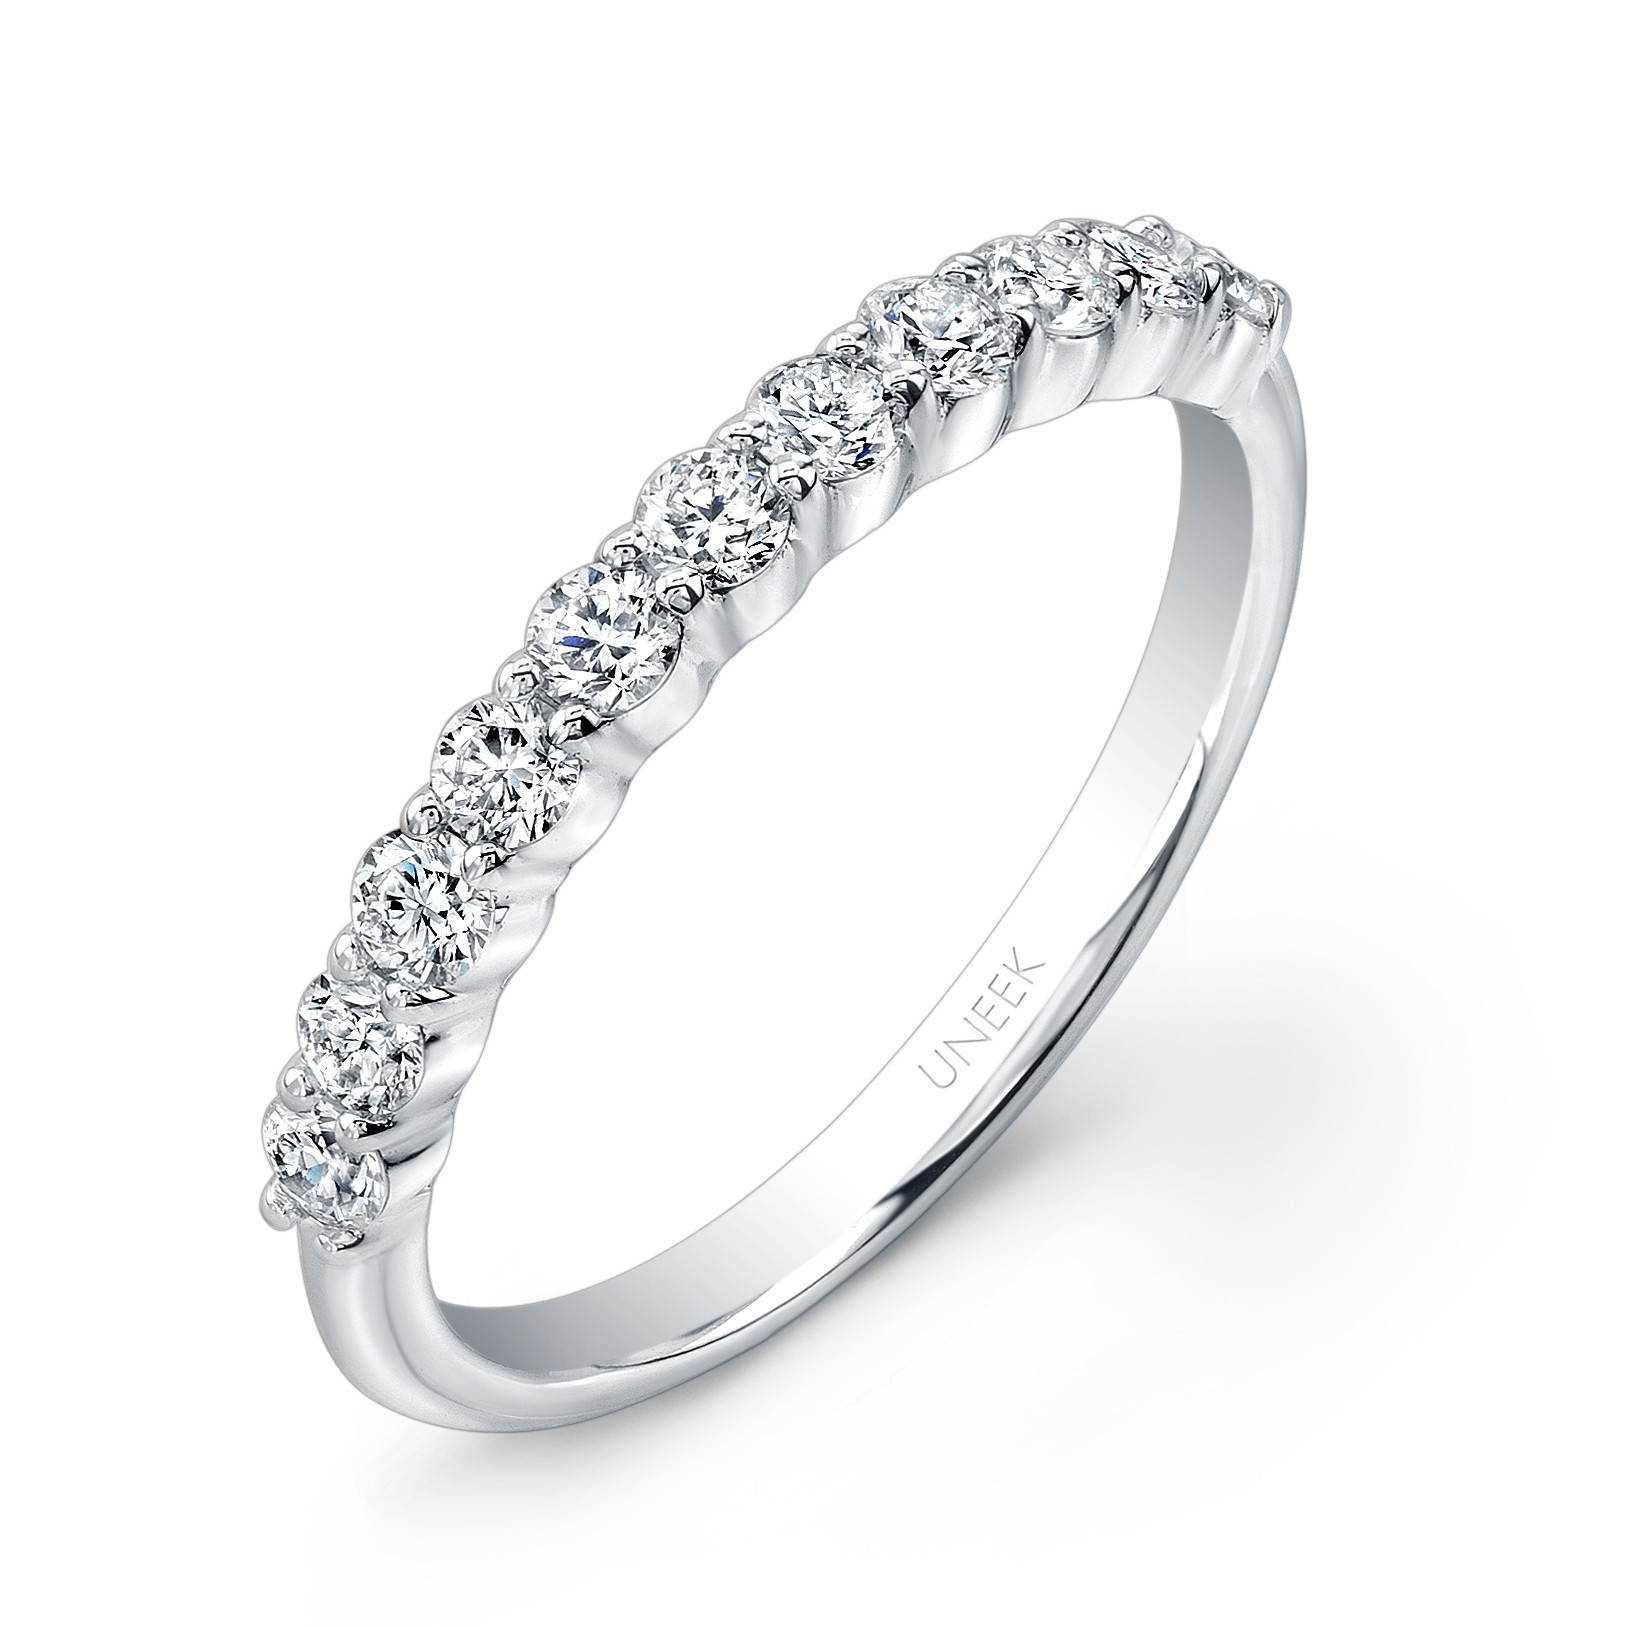 Uneek 11-Diamond Shared-Prong Wedding Band with Scalloped Edges, in 14K White Gold UWB012